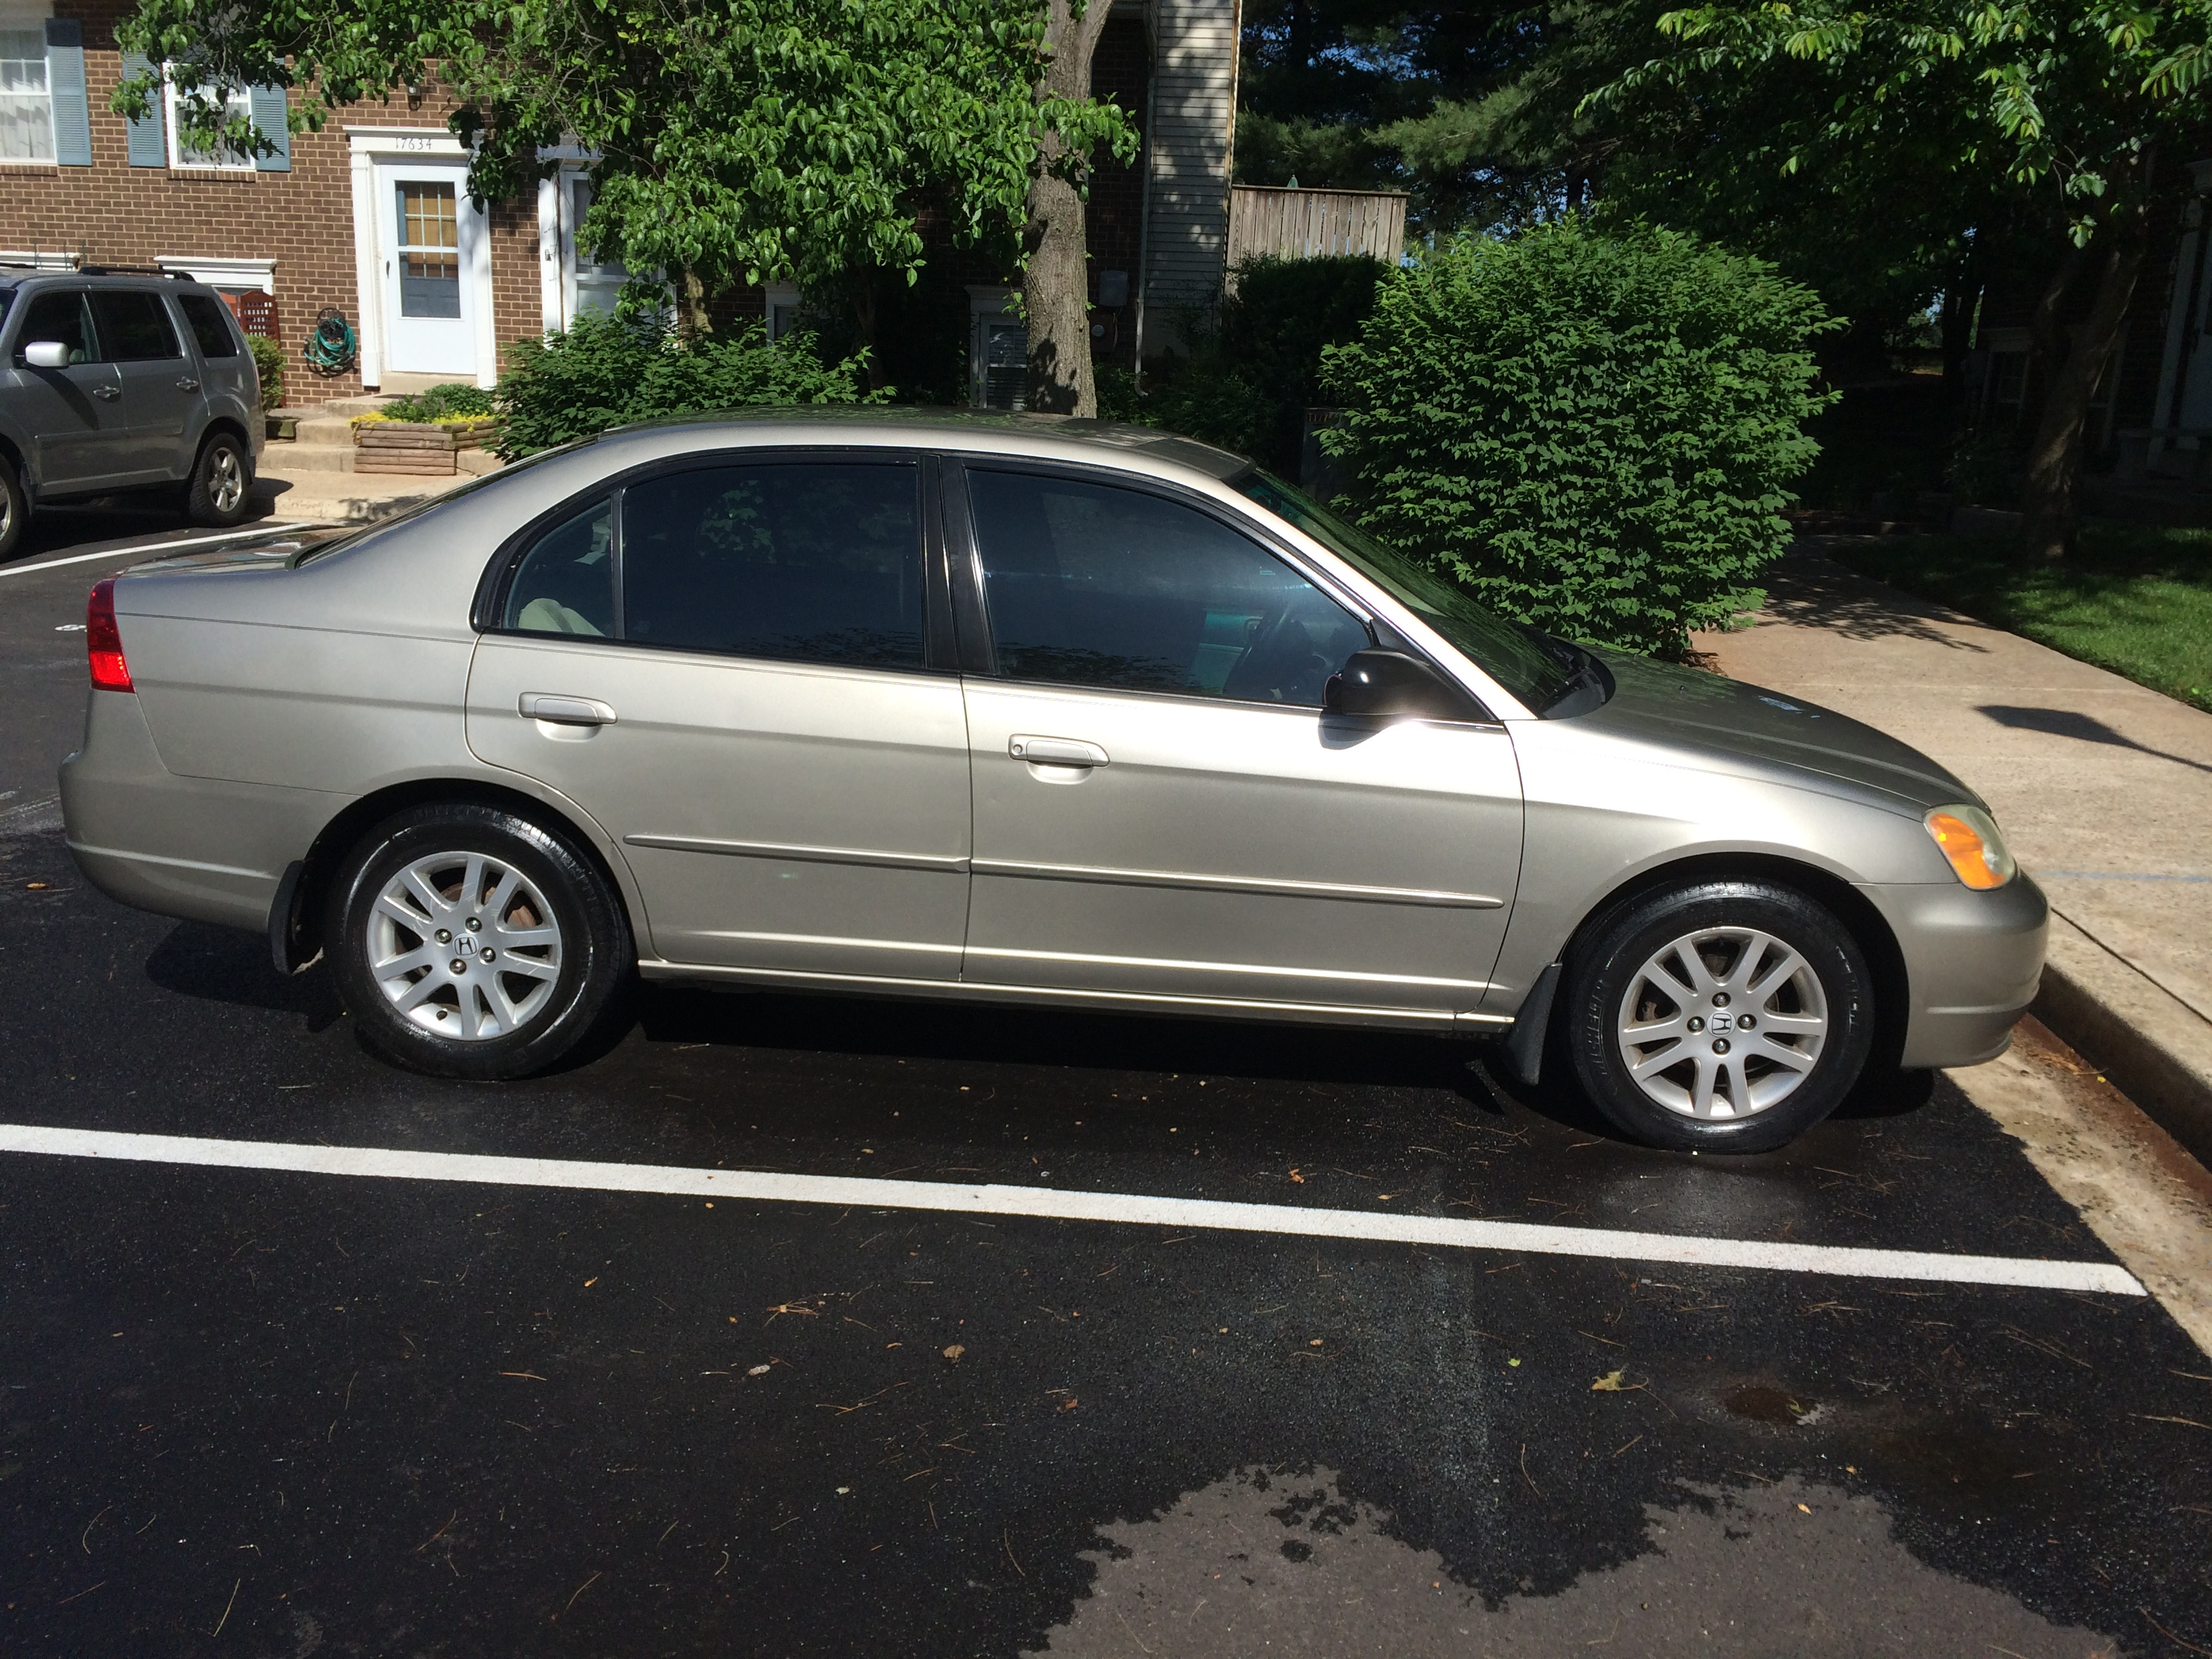 Cash for cars cincinnati oh sell your junk car the for Honda civic lx